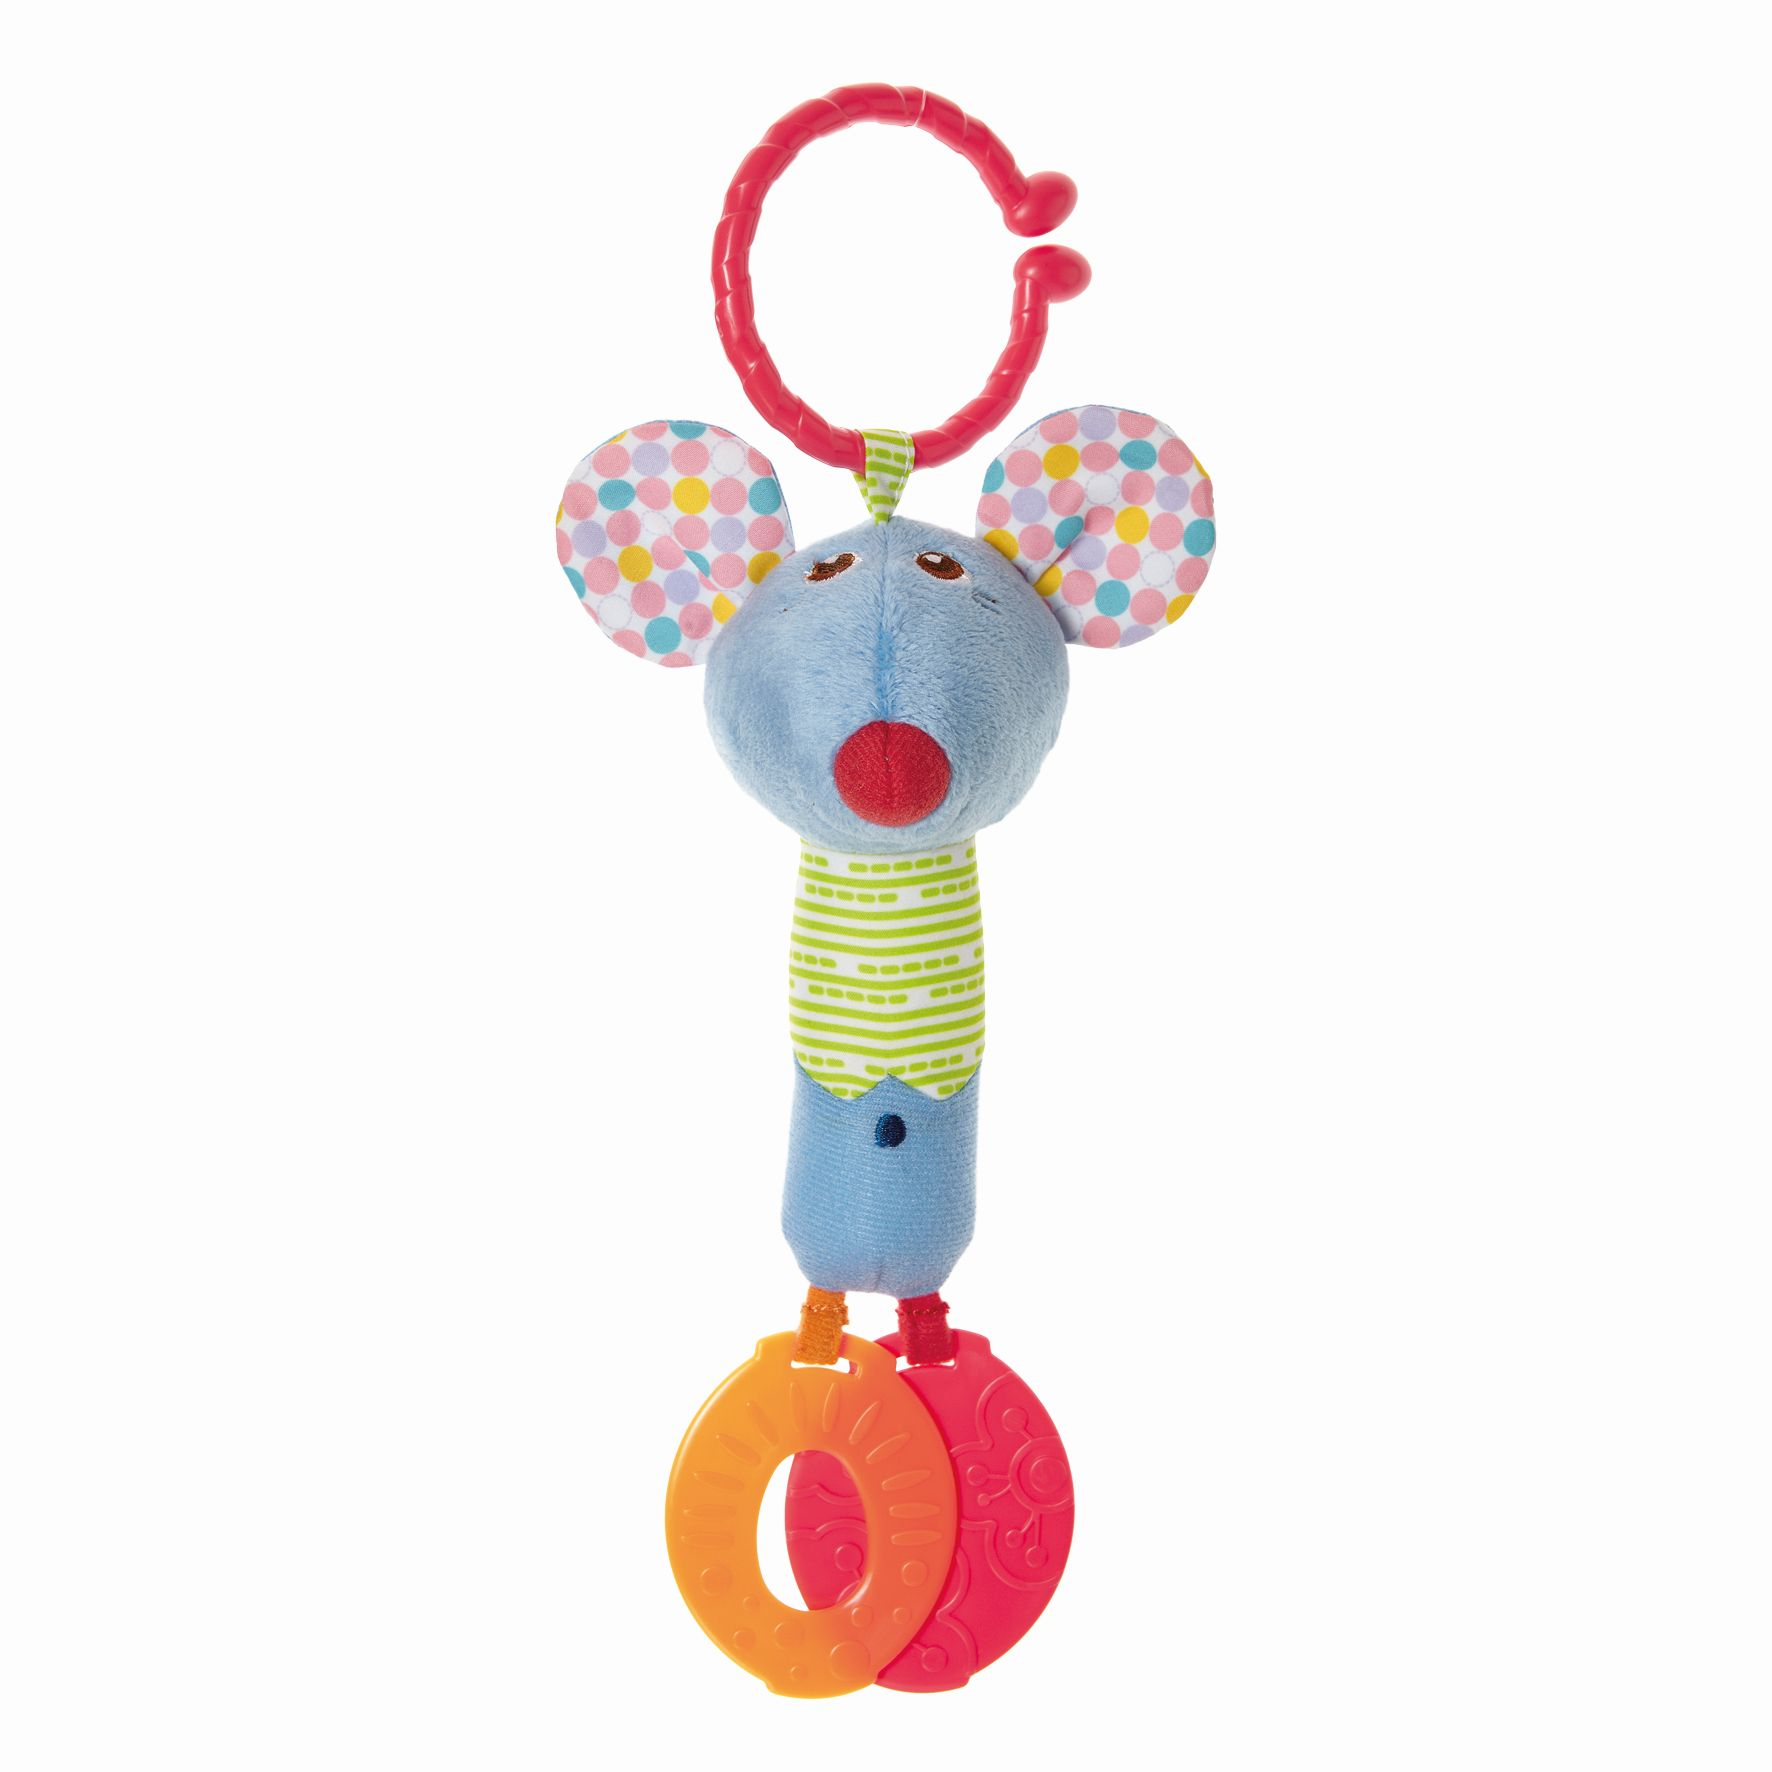 Kidroom Chicco Stroller Toy Mouse Buy At Kidsroom Toys